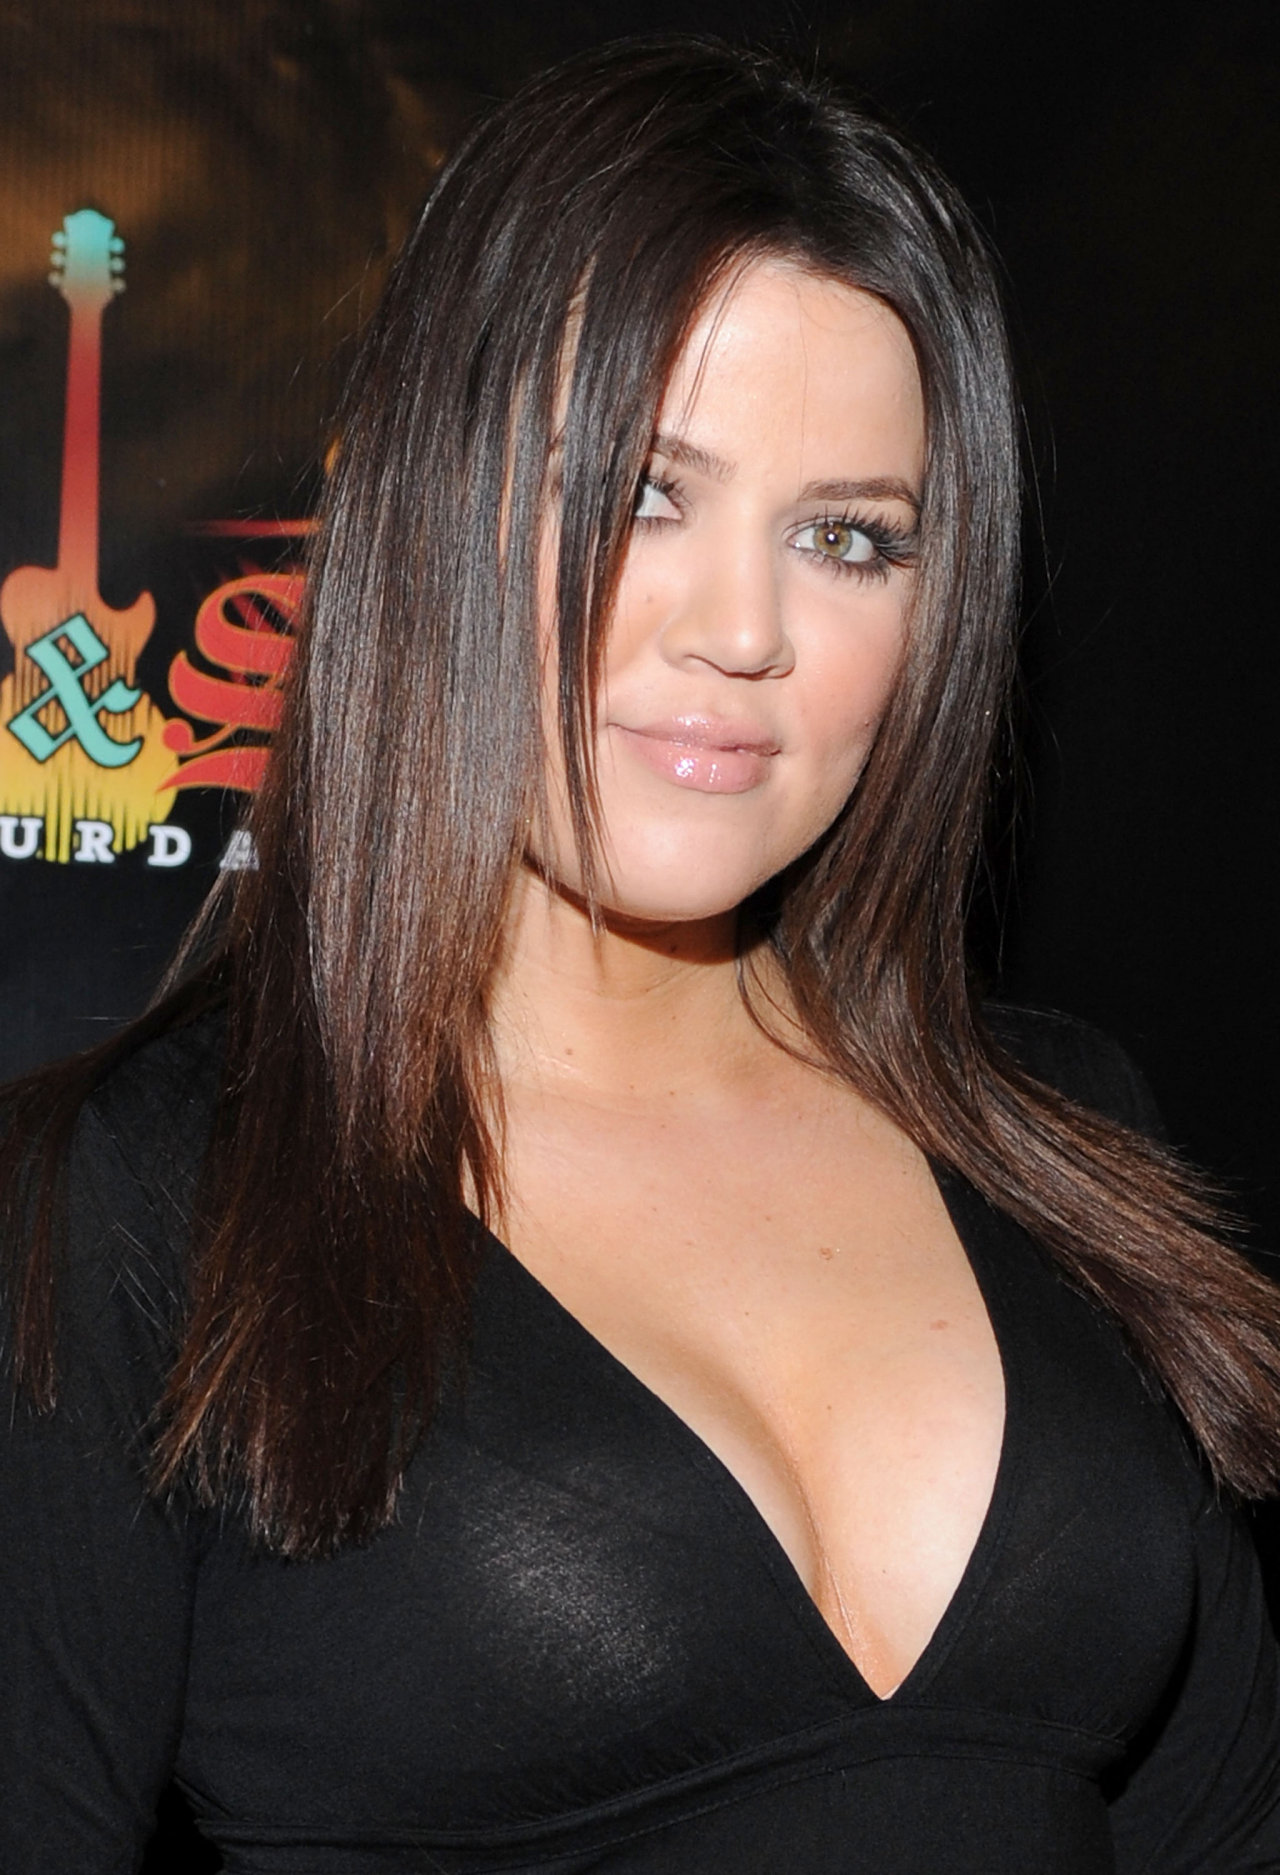 Khloe Kardashian wallpapers (14267). Beautiful Khloe ... Khloe Kardashian Hot Wallpapers